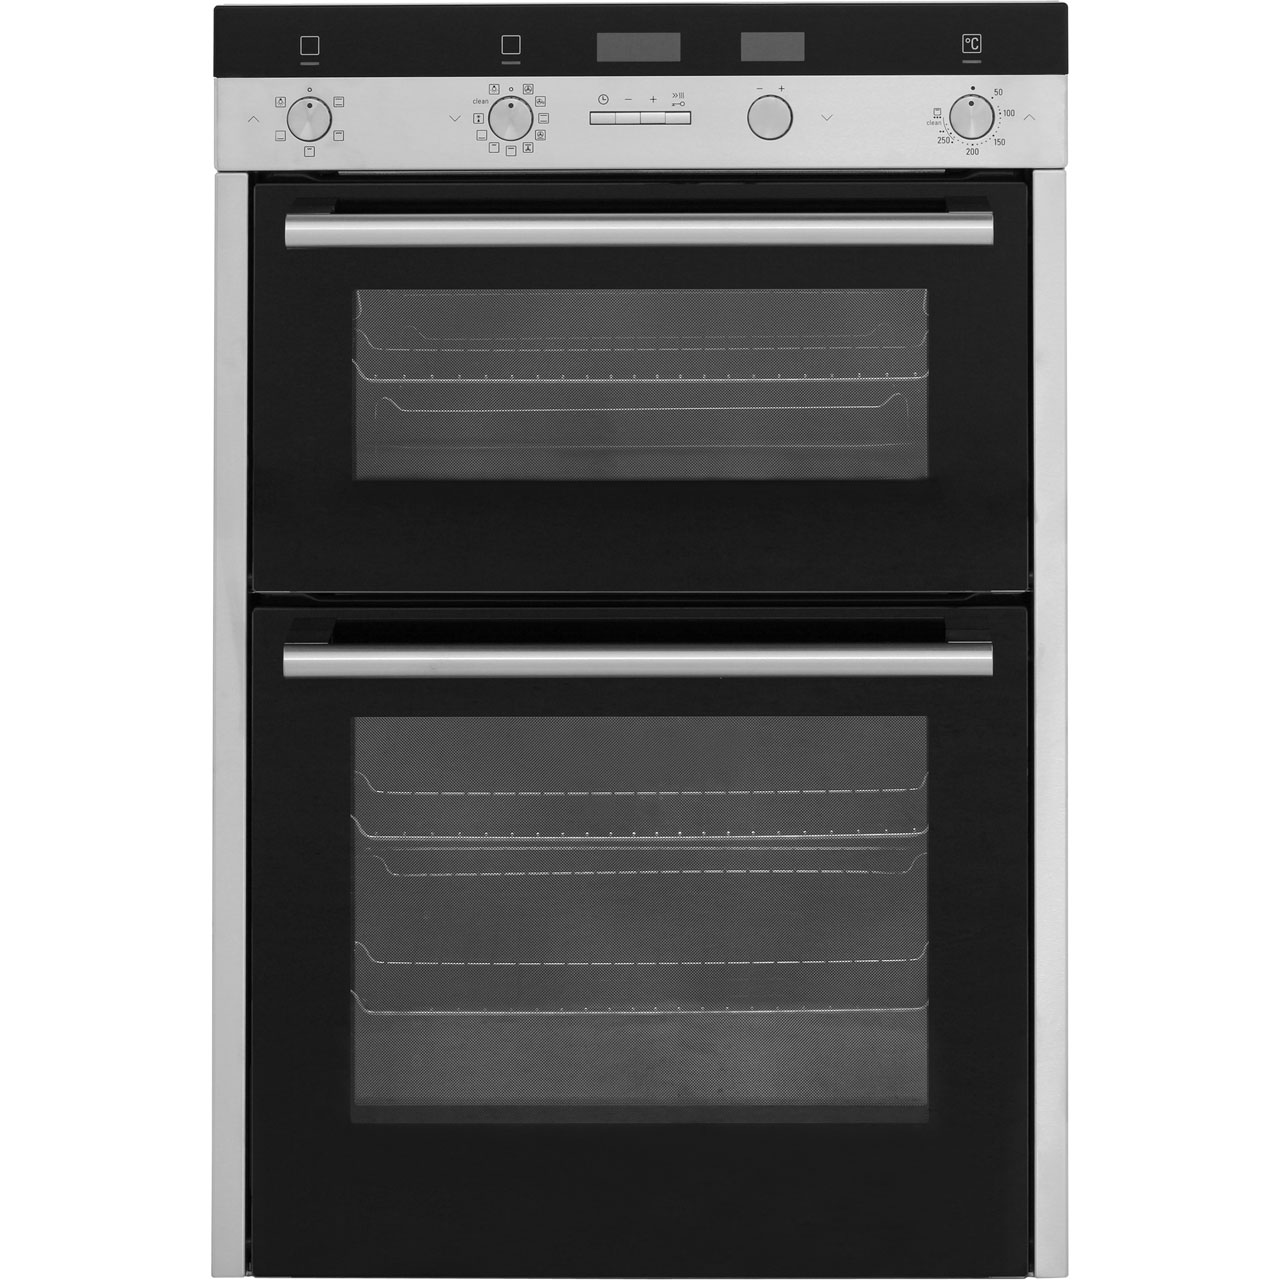 Siemens iq 500 hb55mb551b built in double oven stainless for Siemens ofen